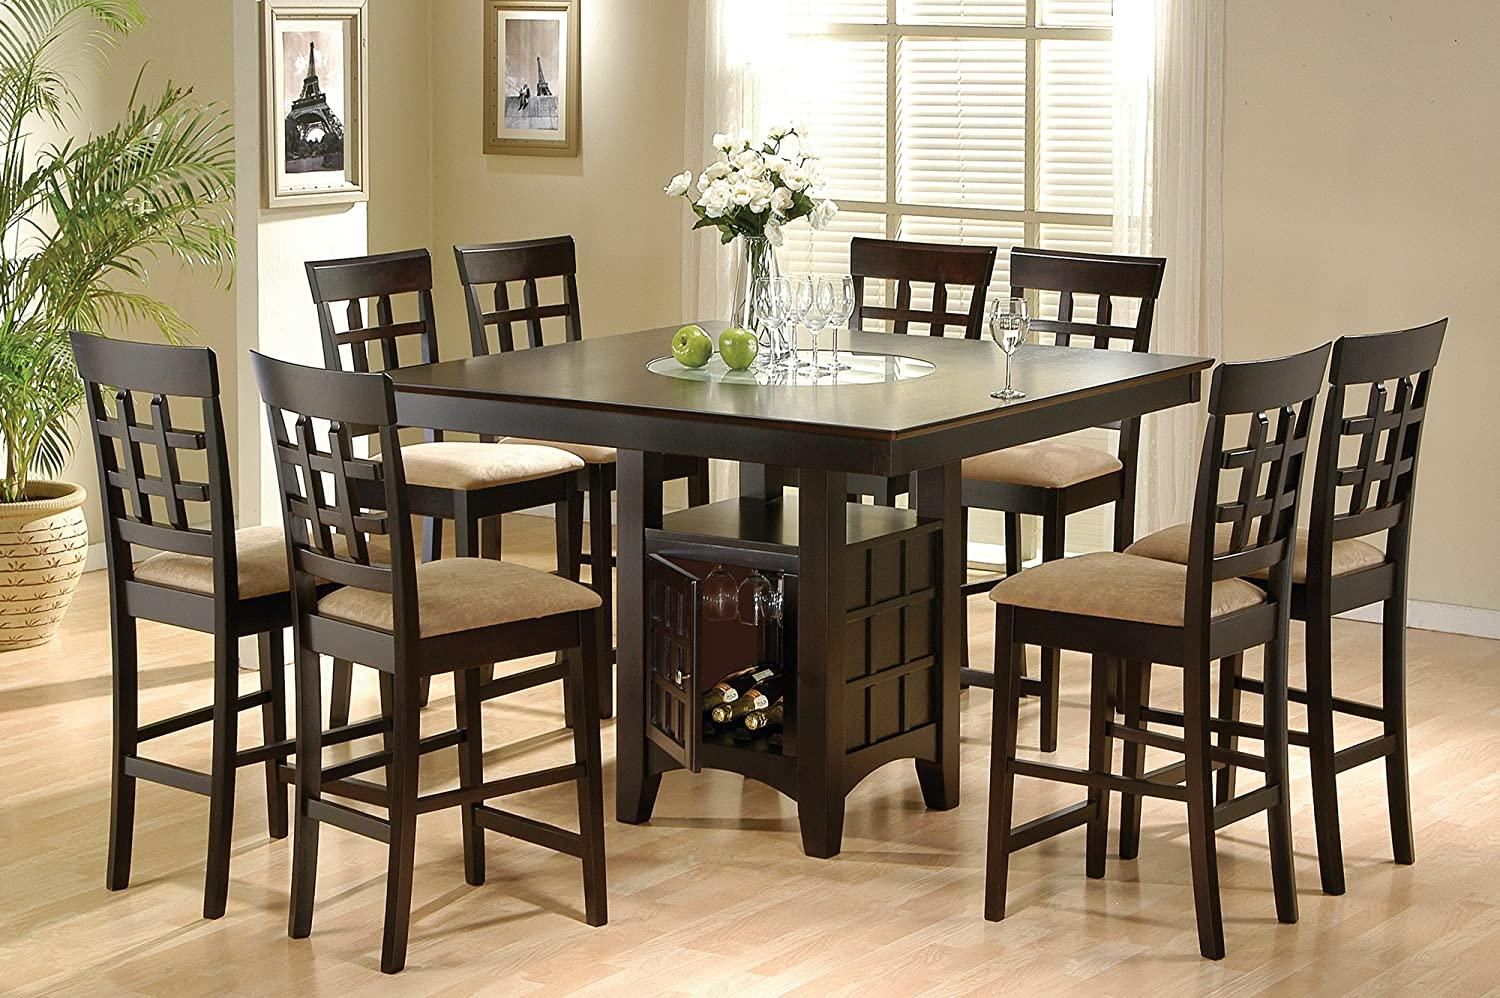 Top 13 Best Dining Set for Home 10